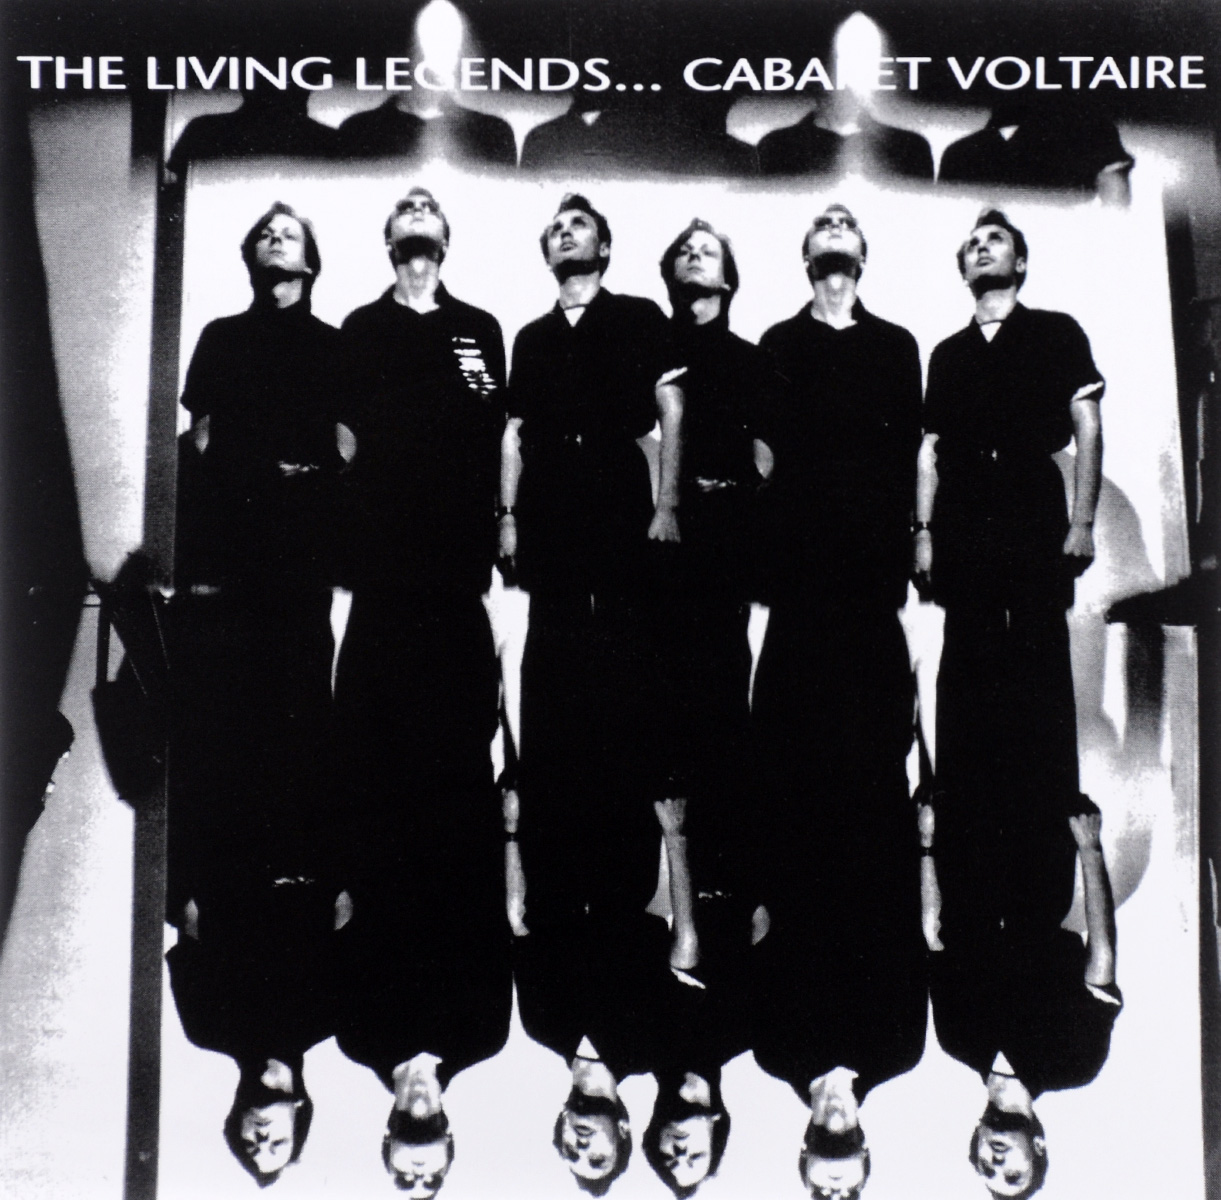 Cabaret Voltaire Cabaret Voltaire. The Living Legends... cabaret voltaire cabaret voltaire the original sound of sheffield 78 82 best of